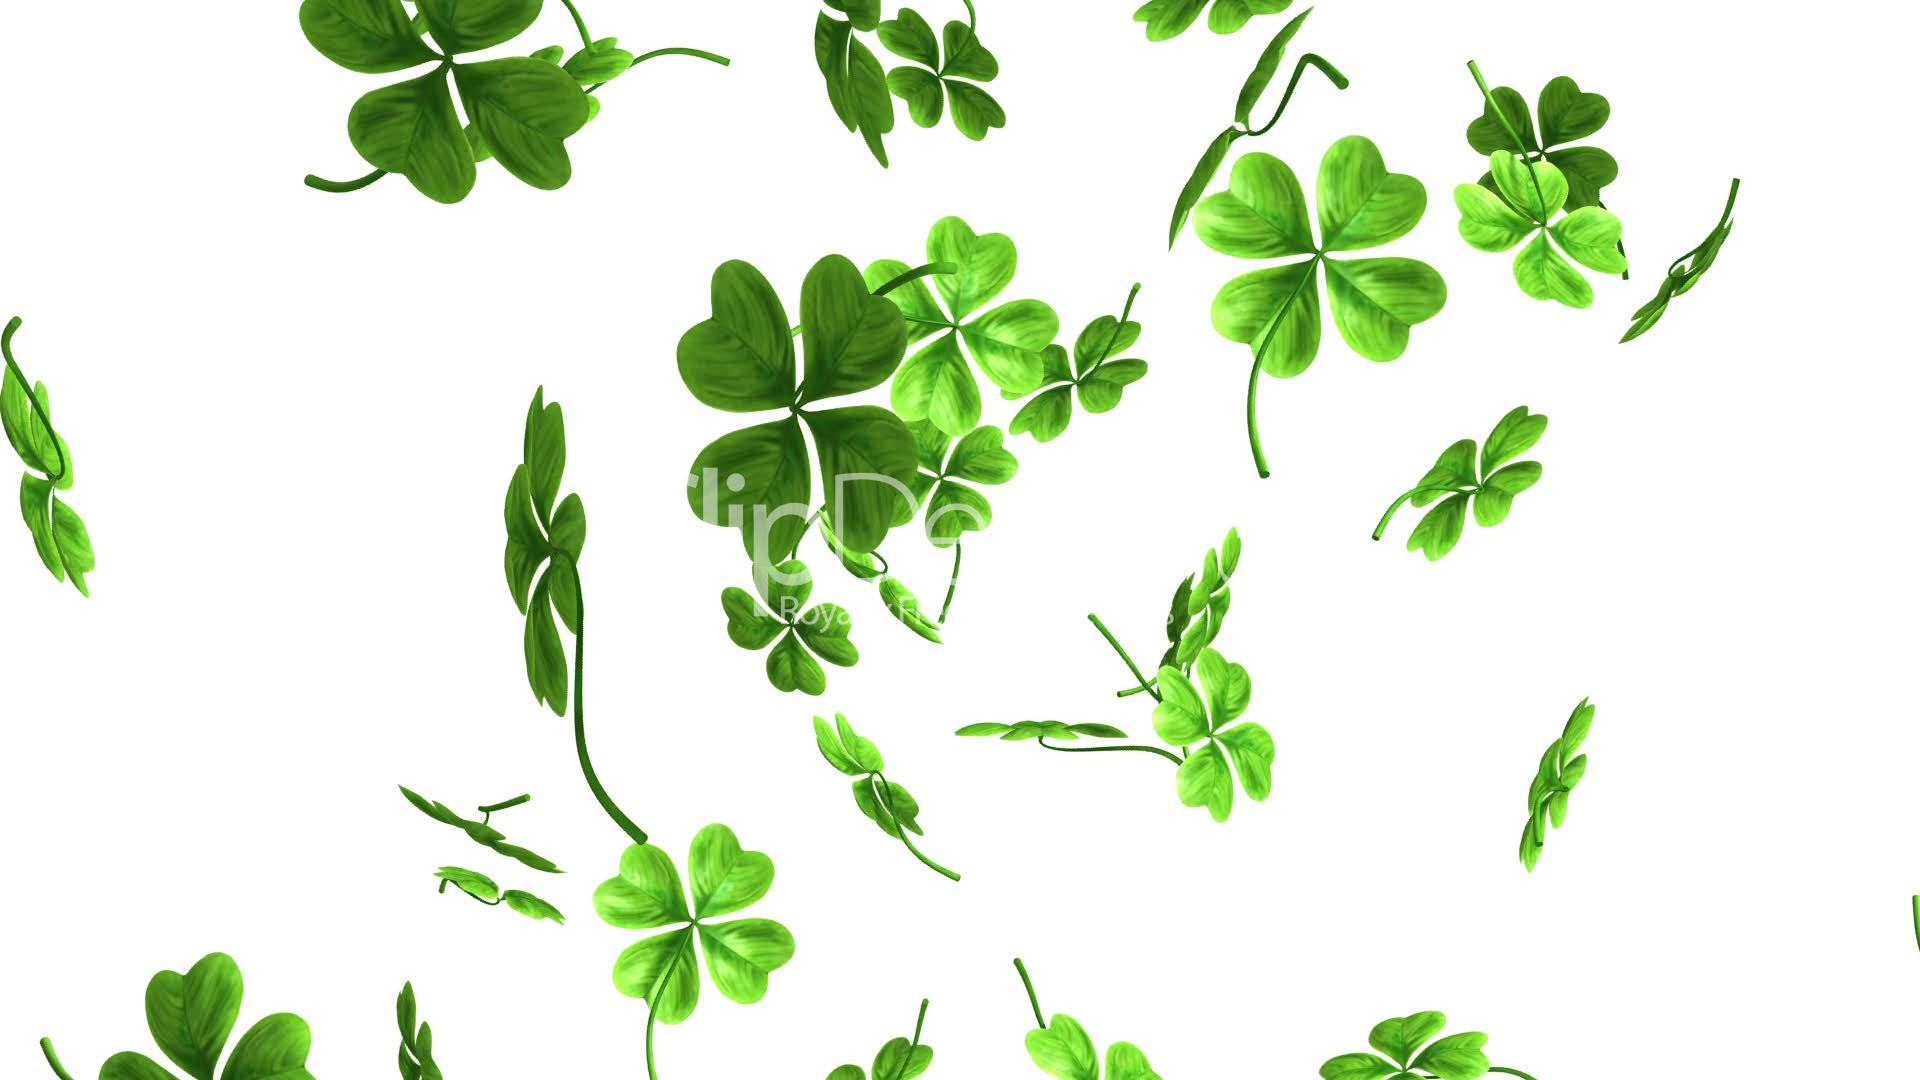 Falling Leaves Animated Wallpaper Falling Shamrock Leaves Royalty Free Video And Stock Footage